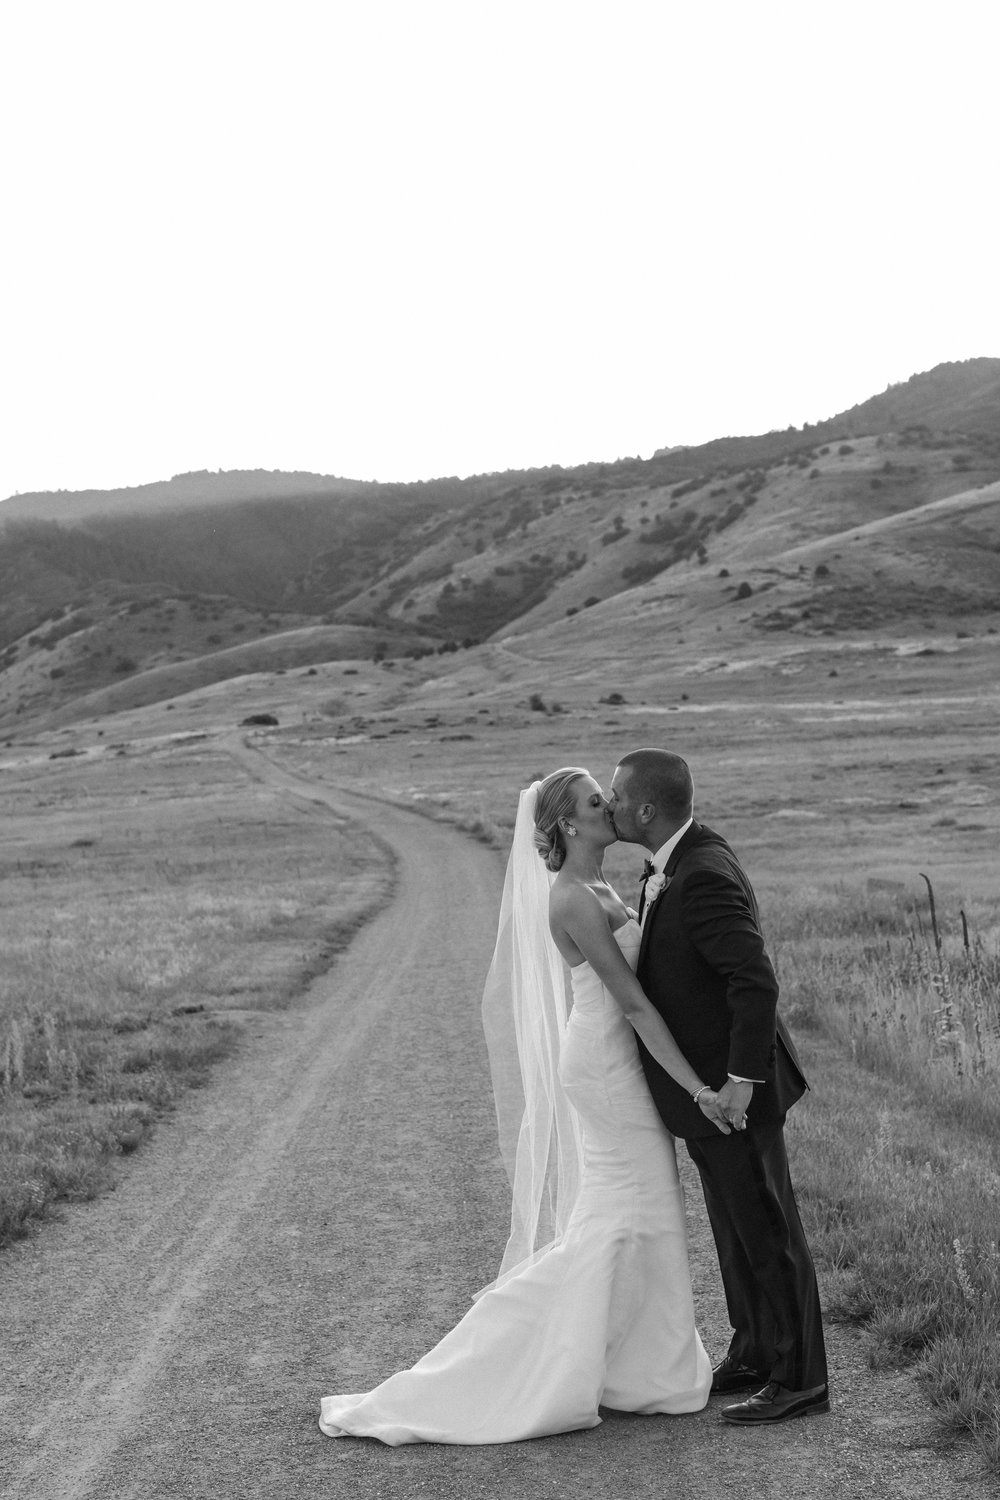 Hailley+Howard_Colorado+Wedding_The+Manor+House-471.jpg